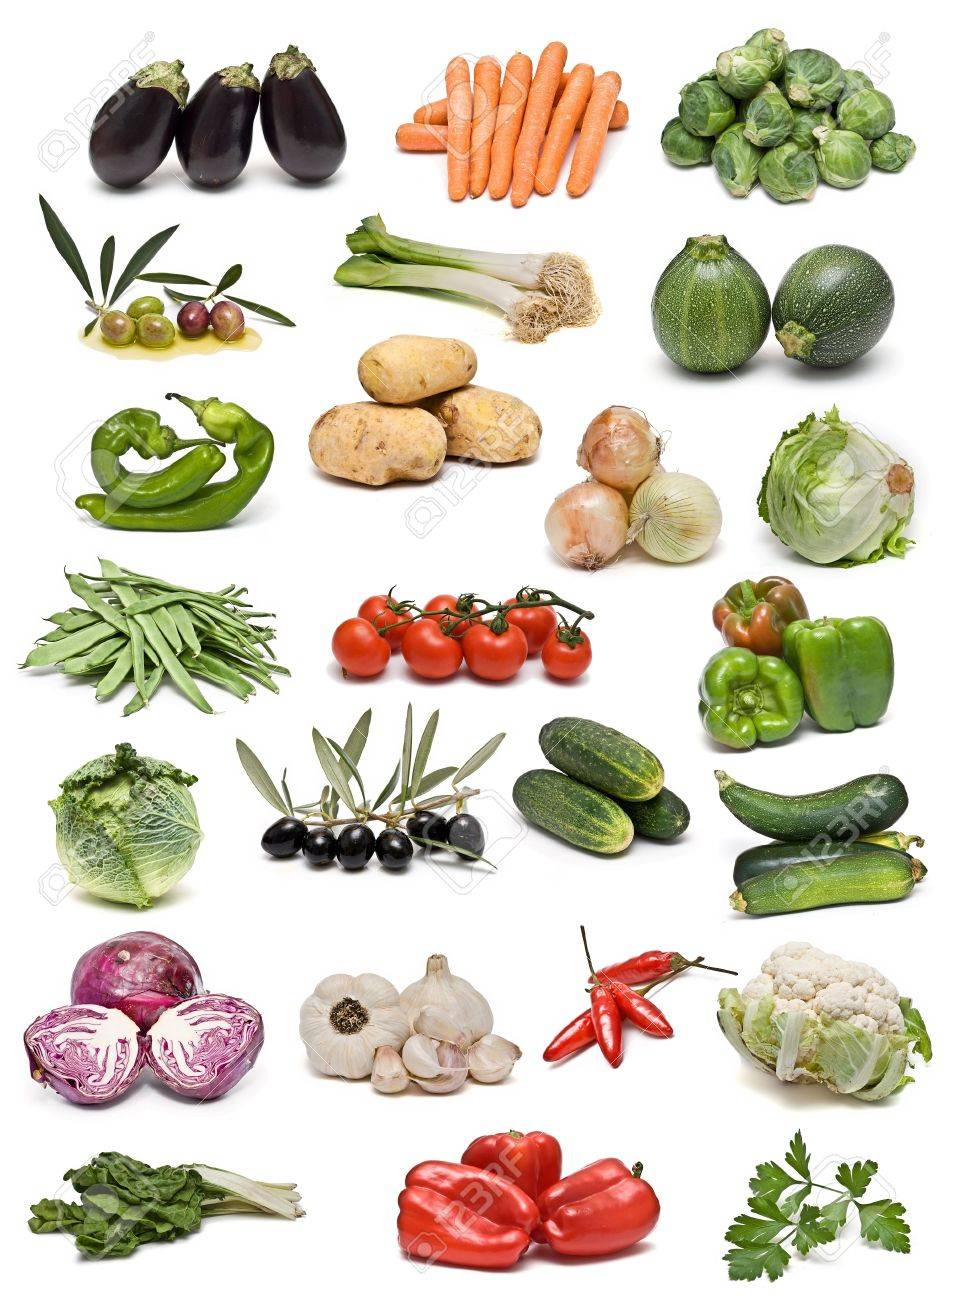 Vegetables collection. Stock Photo - 6829707